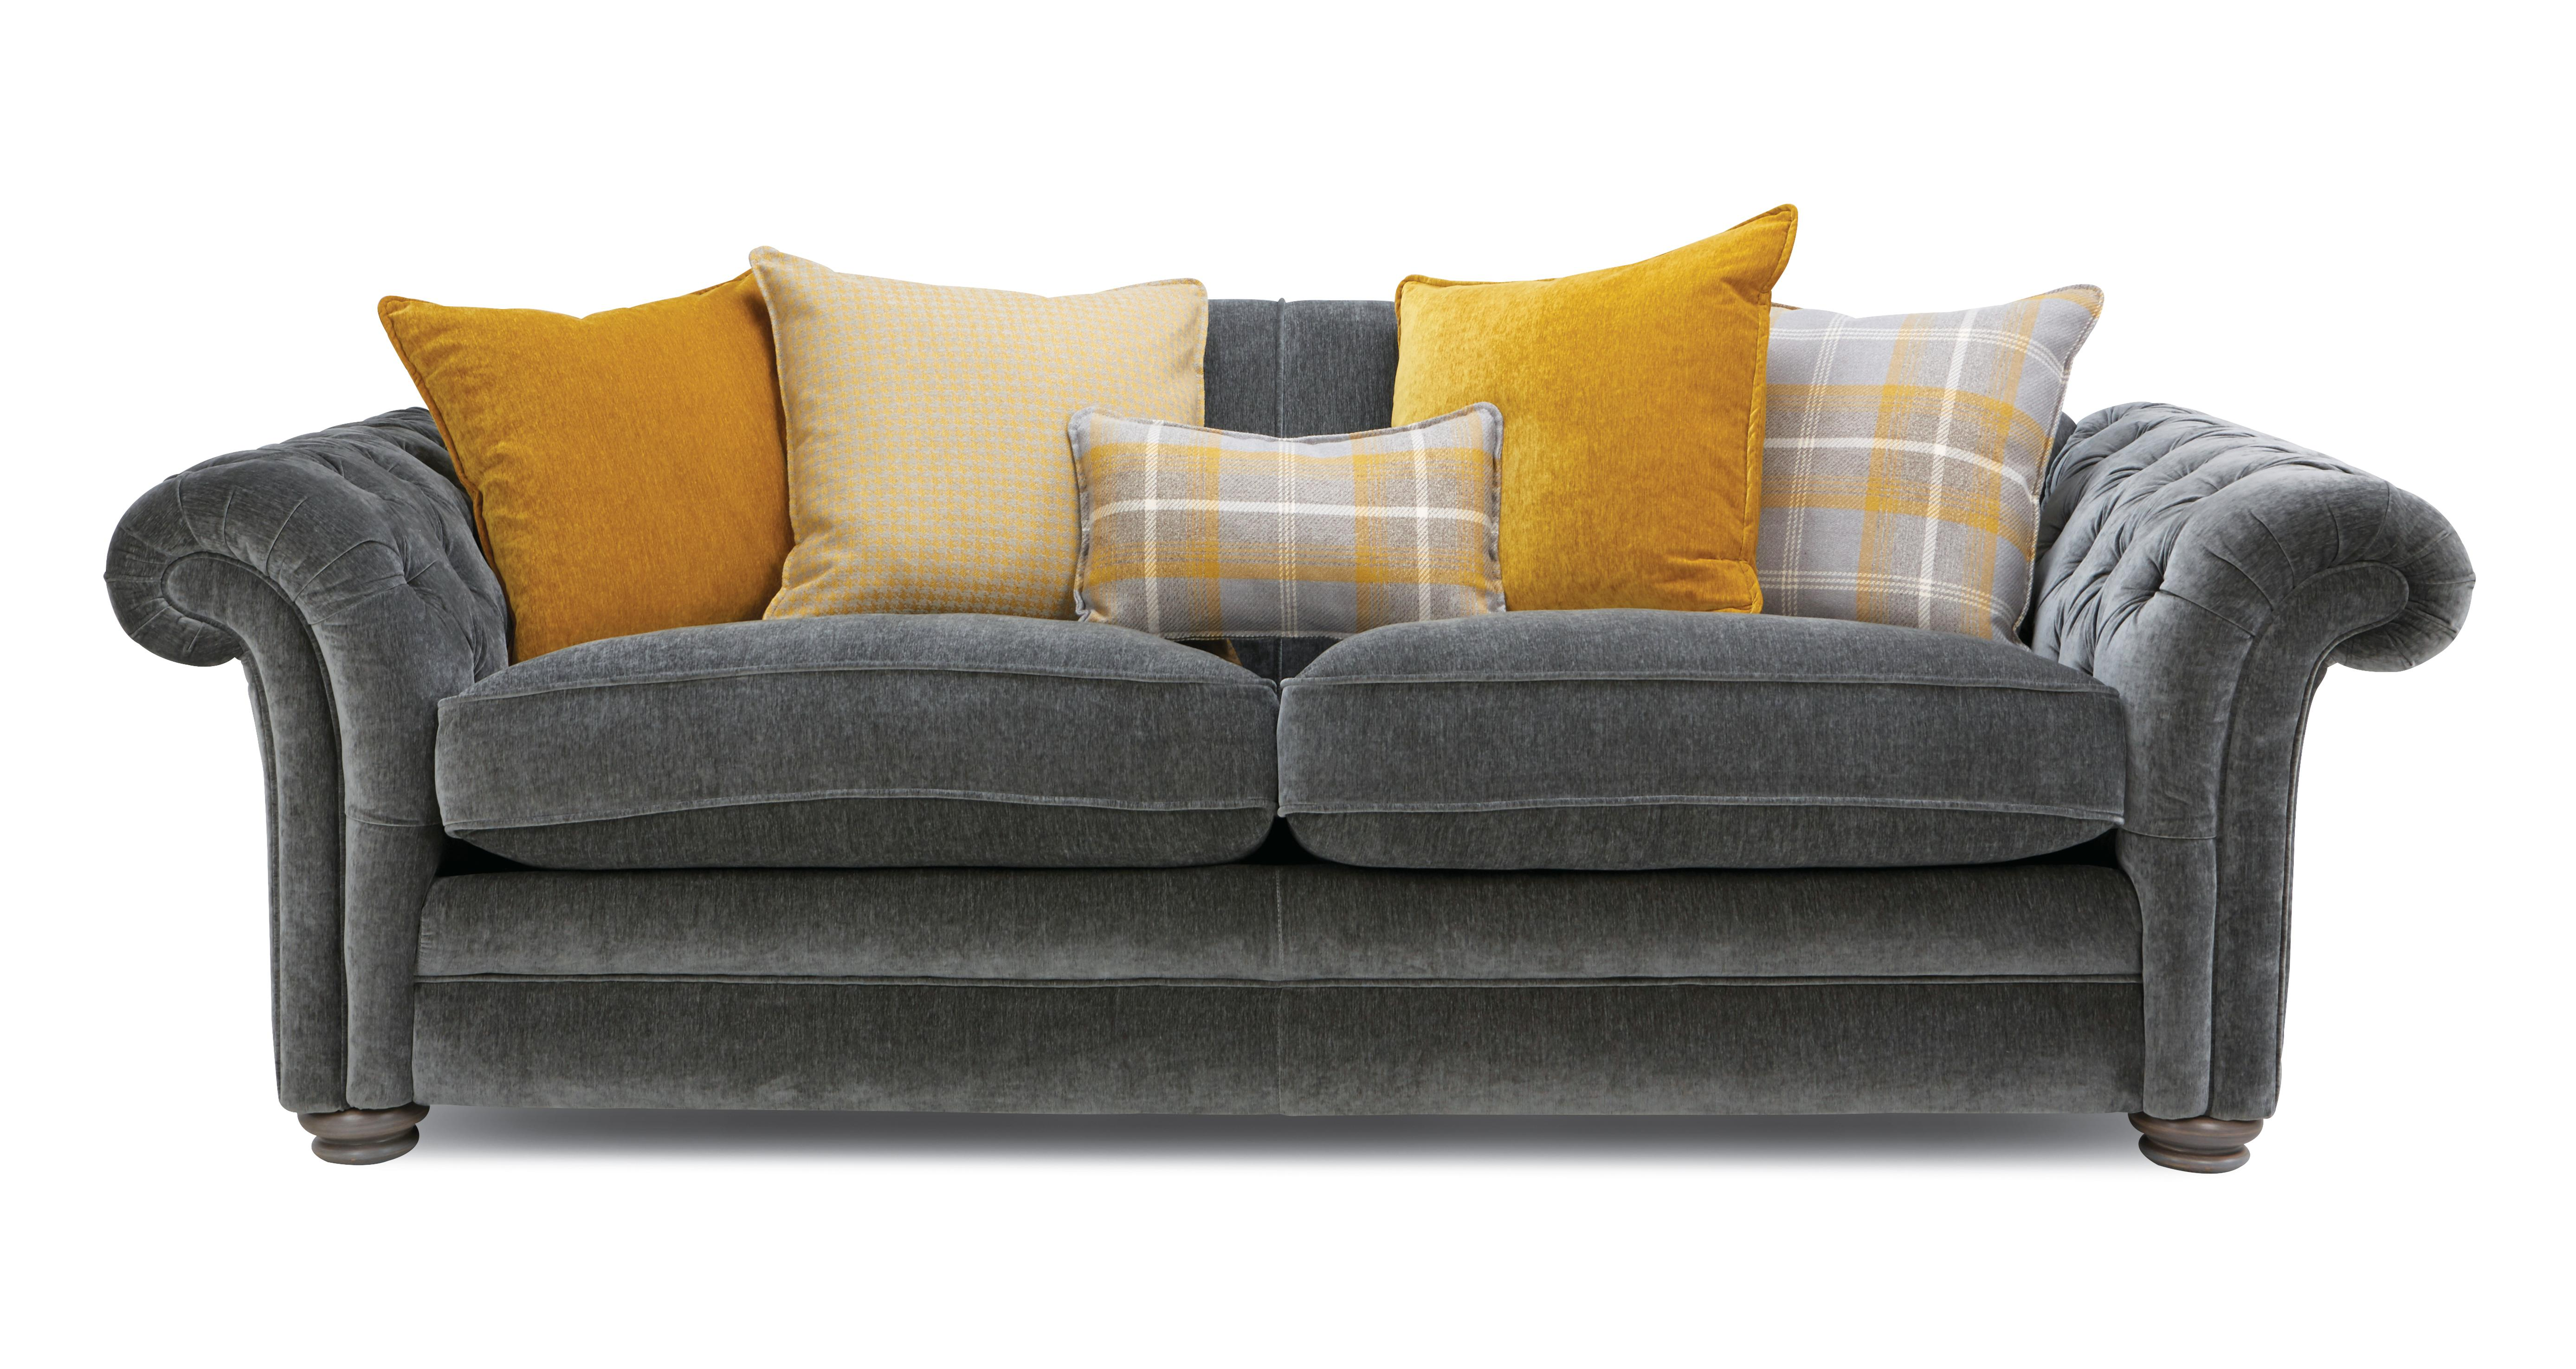 Awe Inspiring Warwick Pillow Back 2 Seater Sofa Caraccident5 Cool Chair Designs And Ideas Caraccident5Info